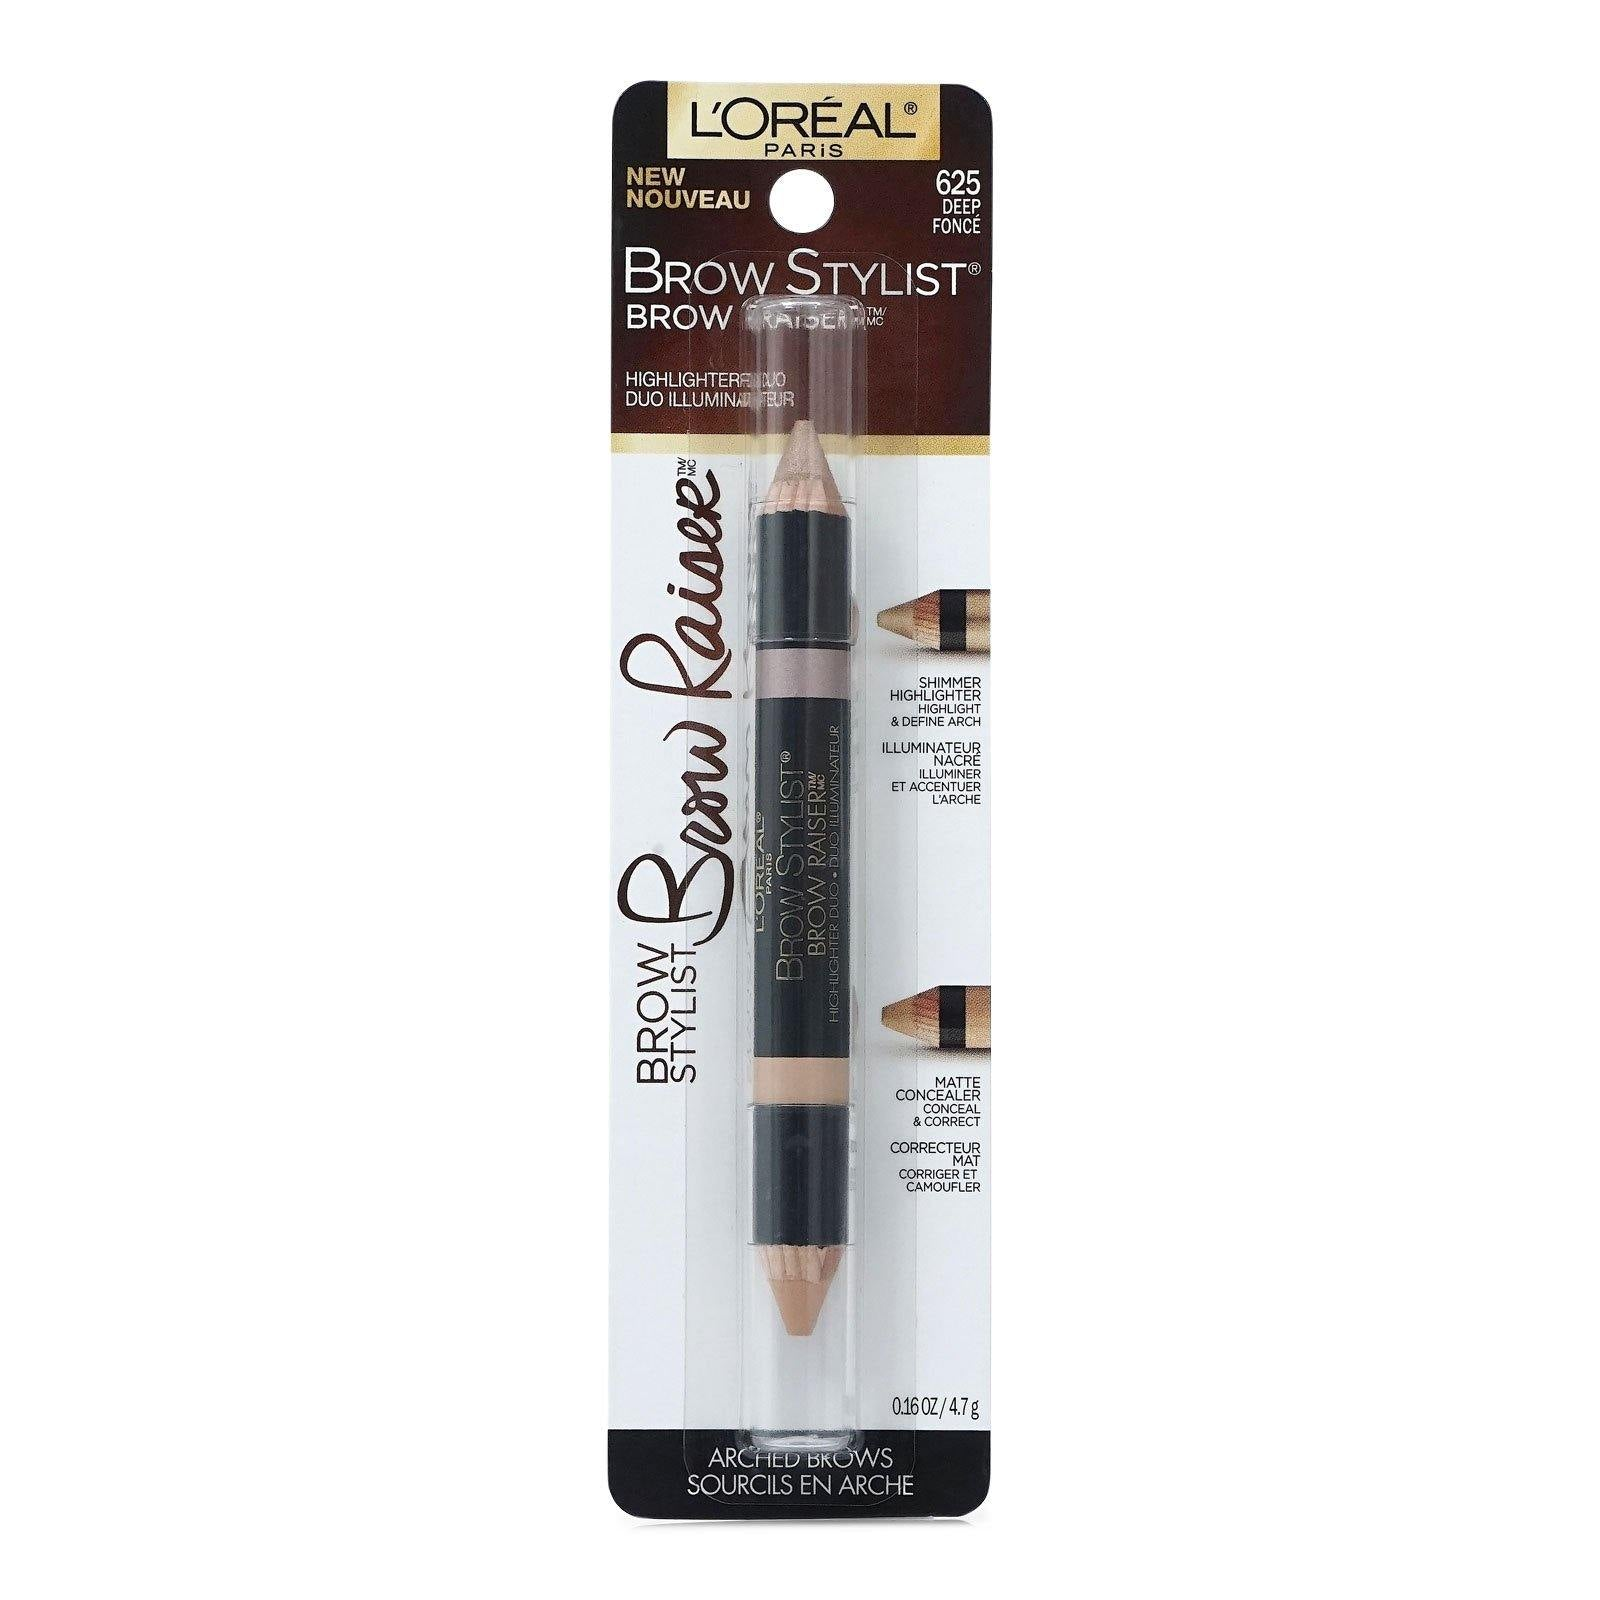 LOREAL BROW STYLIST RAISER HIGHLIGHTER DUO - DEEP # 625 (24/cs)